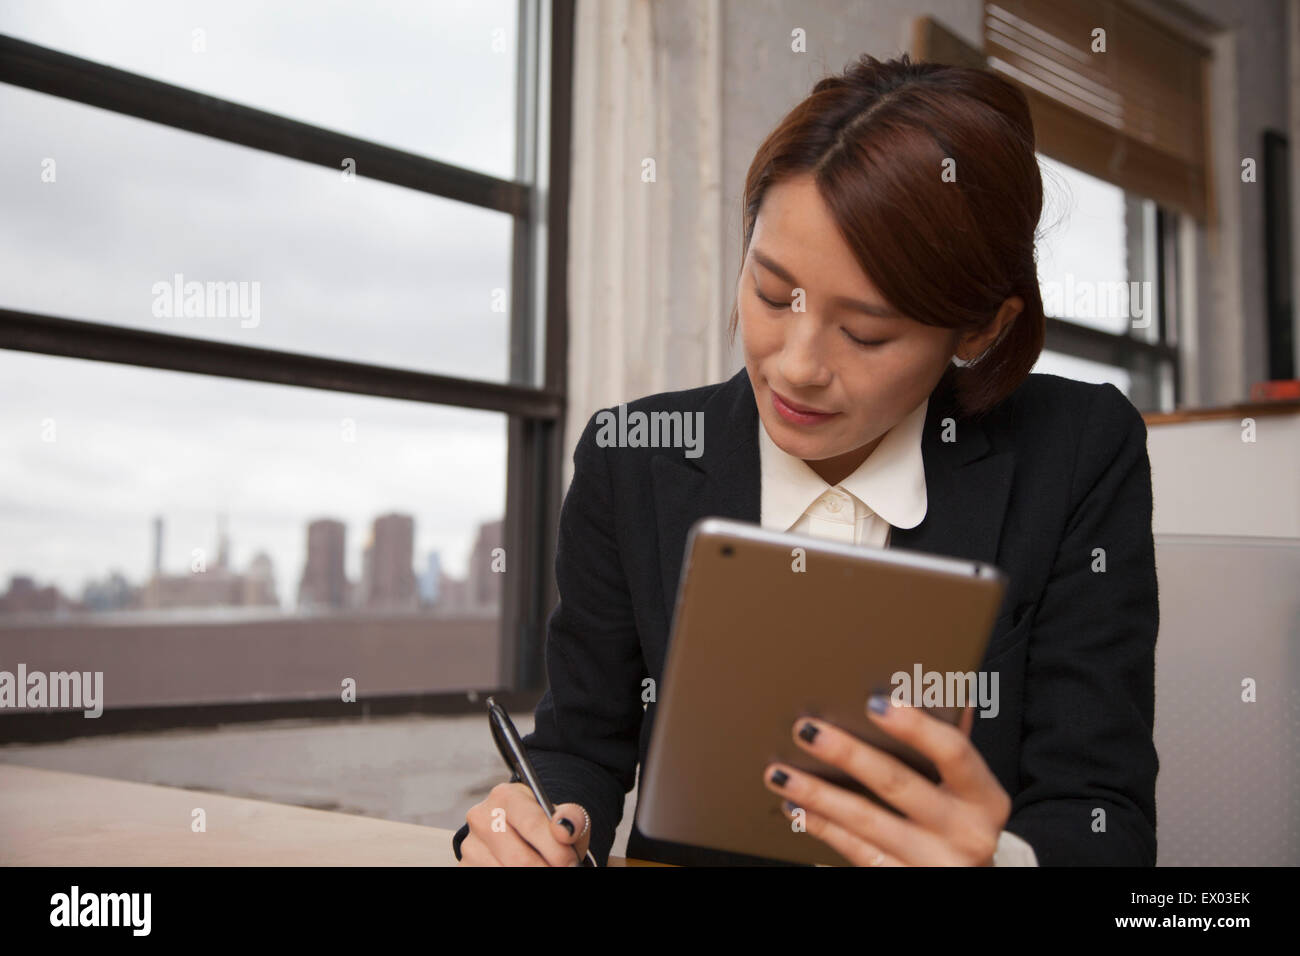 Businesswoman holding digital tablet et rédaction de notes Photo Stock